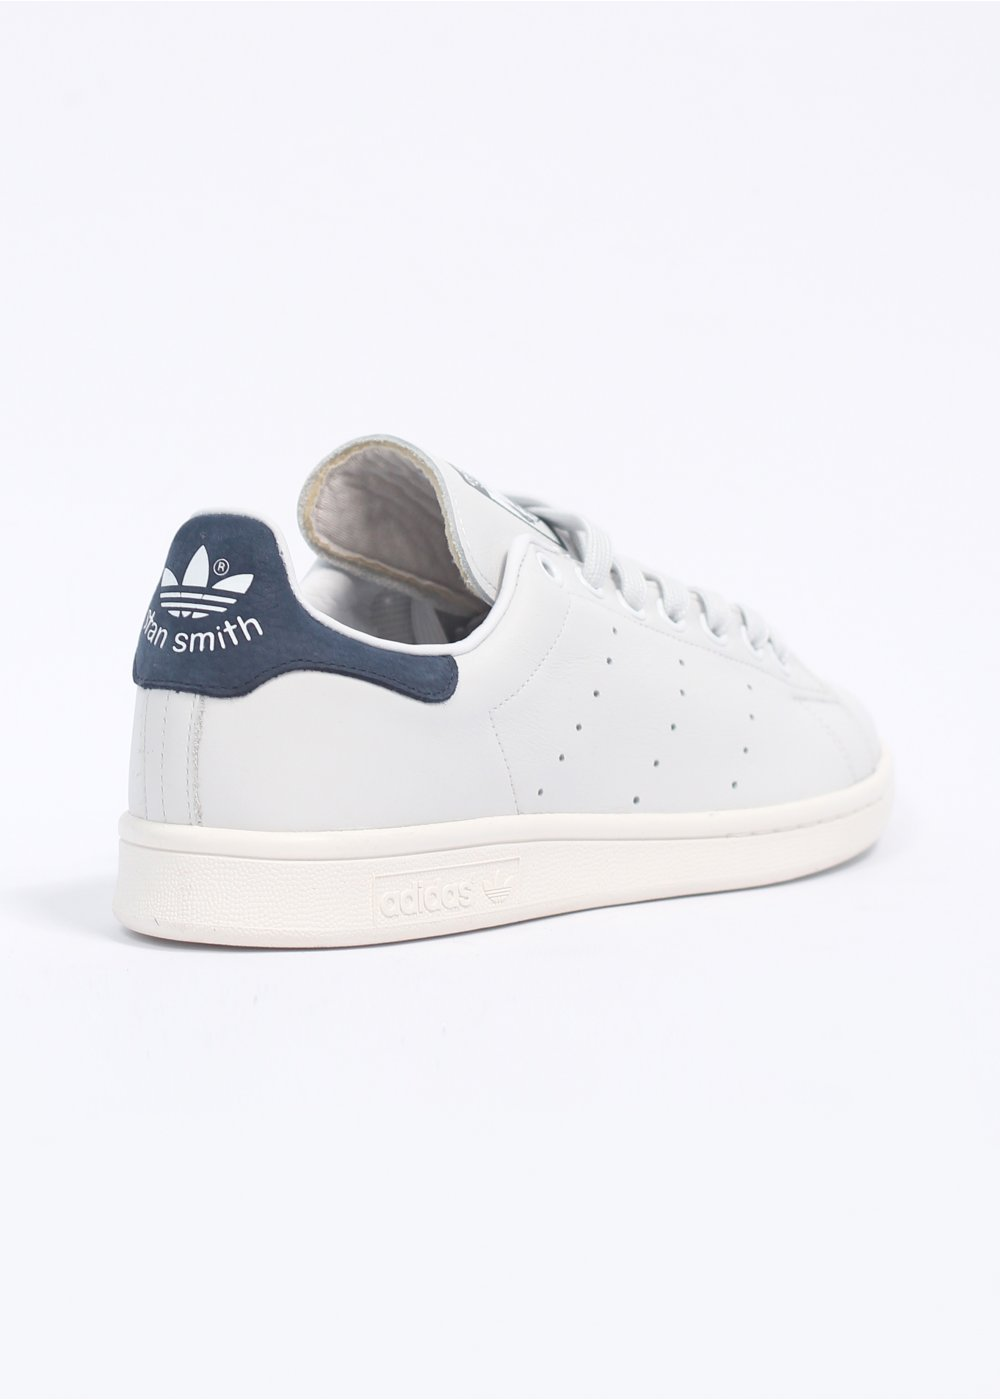 newest c54ed 1389c adidas Originals Footwear Stan Smith Trainers - Neo White / Navy